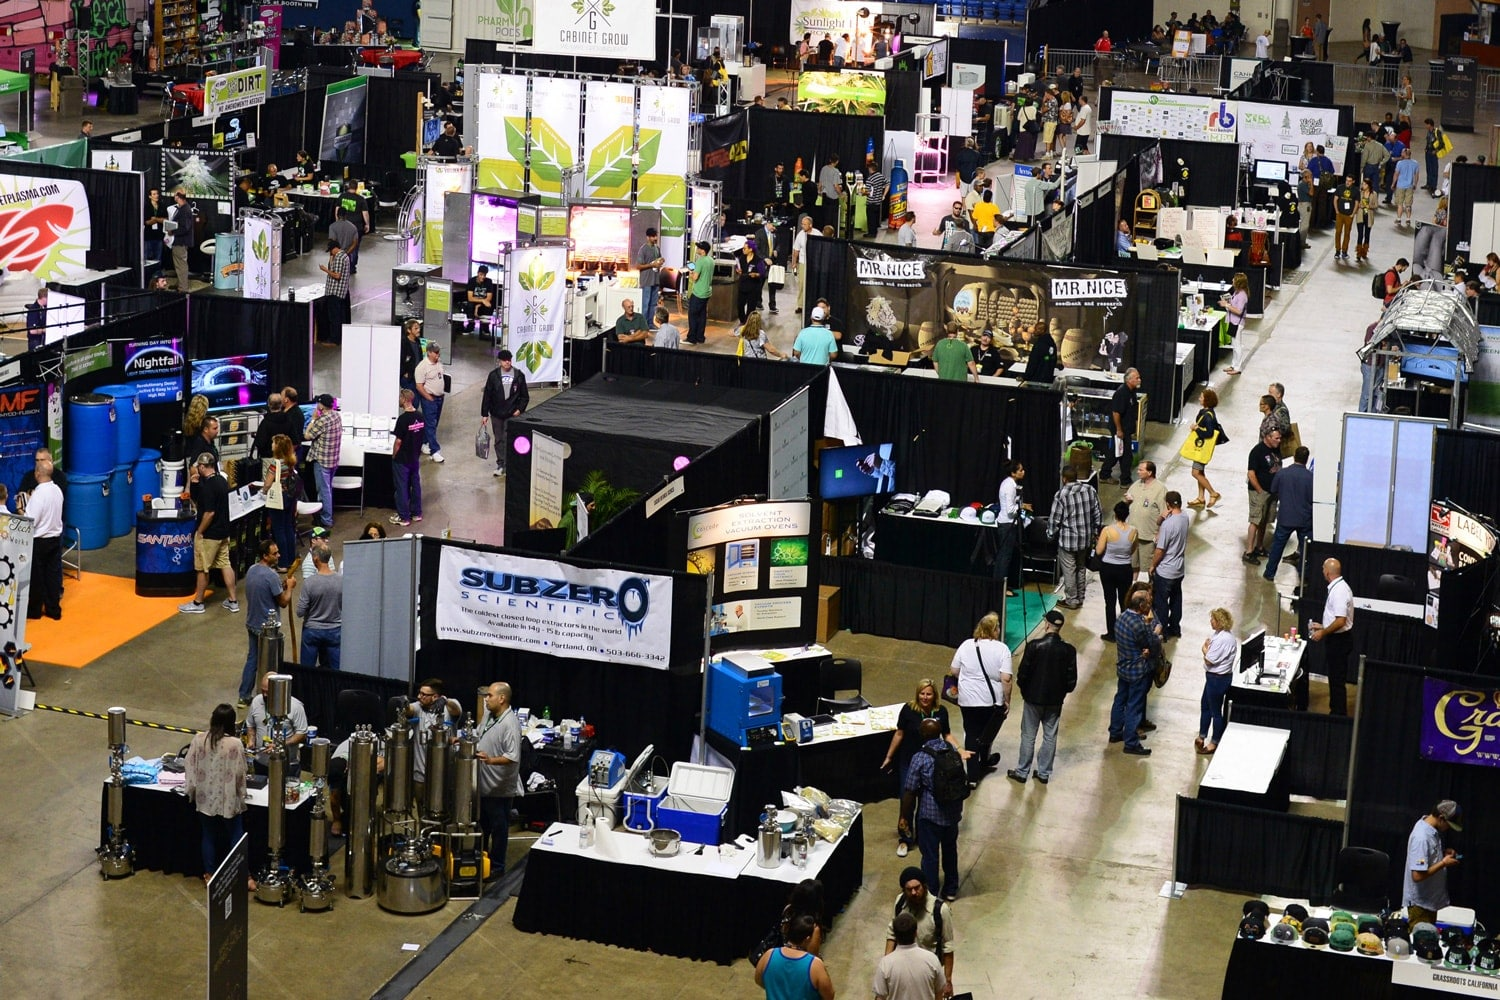 Cannacon cannabis business convention is happening in Detroit on June 21st and 22nd.